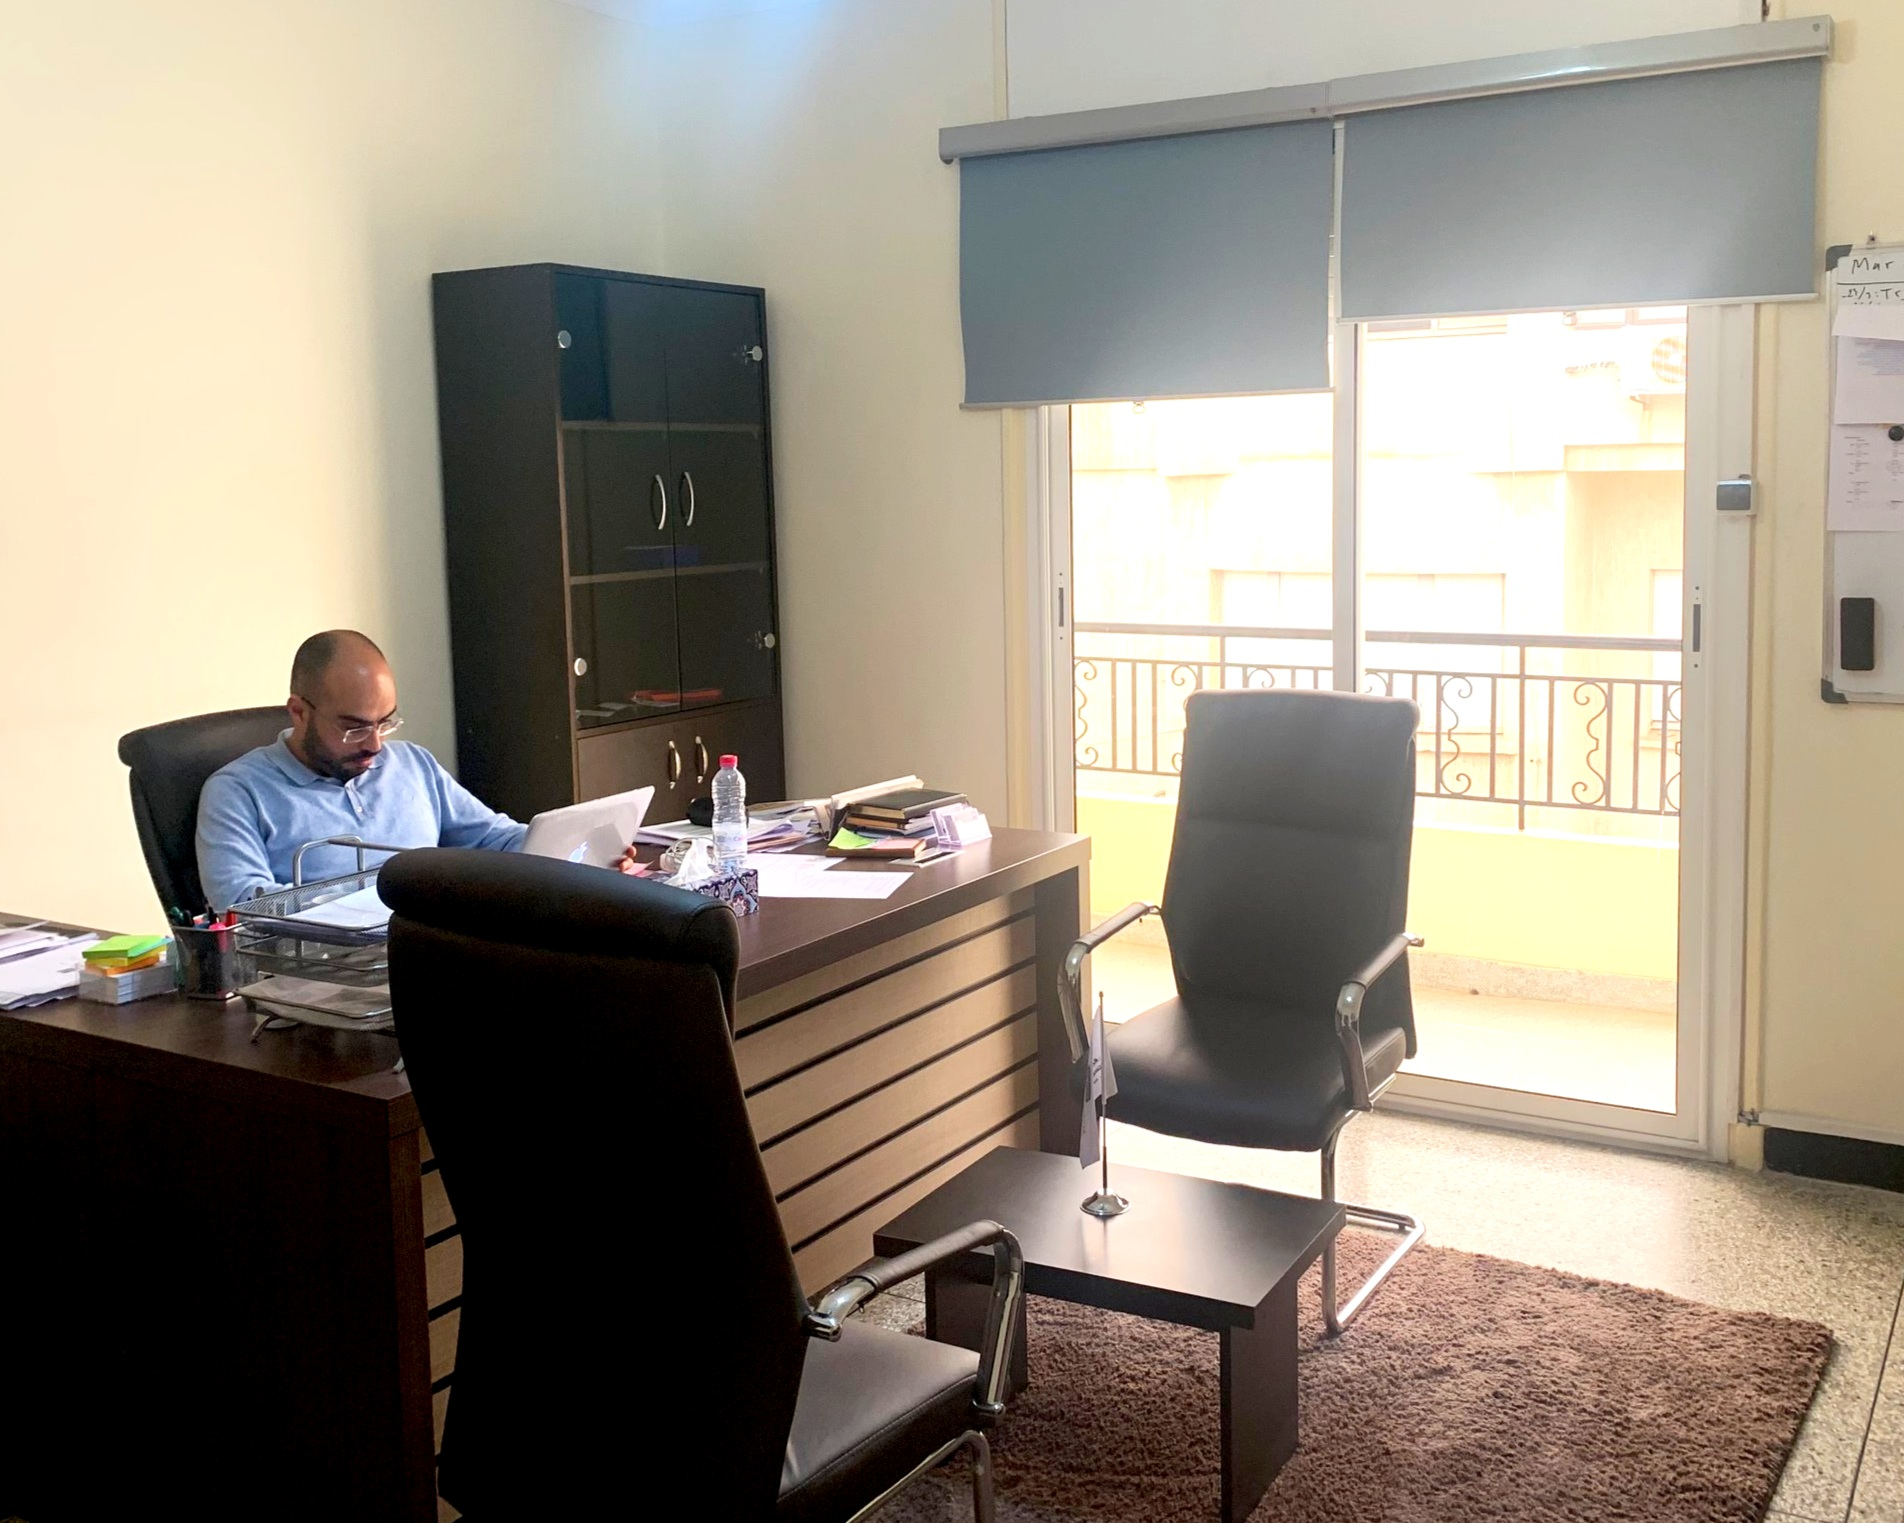 Director Mohammed Masbah hard at work in his office. Photo credit: Aboko-Cole, 2019